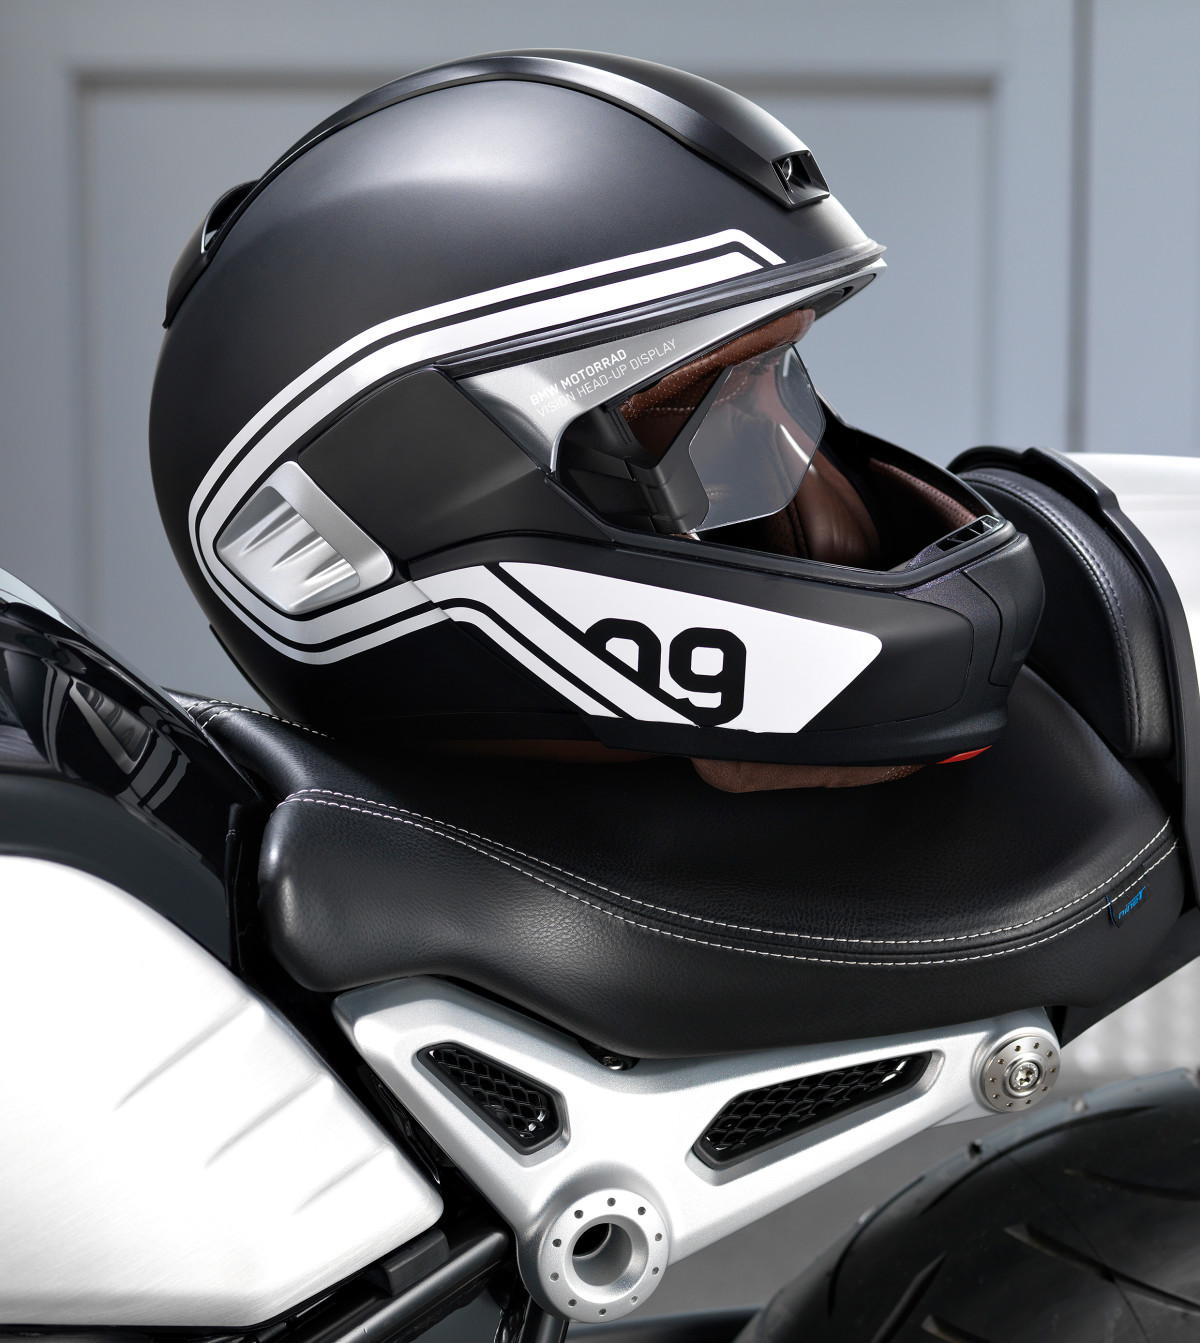 BMW's heads-up display for helmets could make riding safer